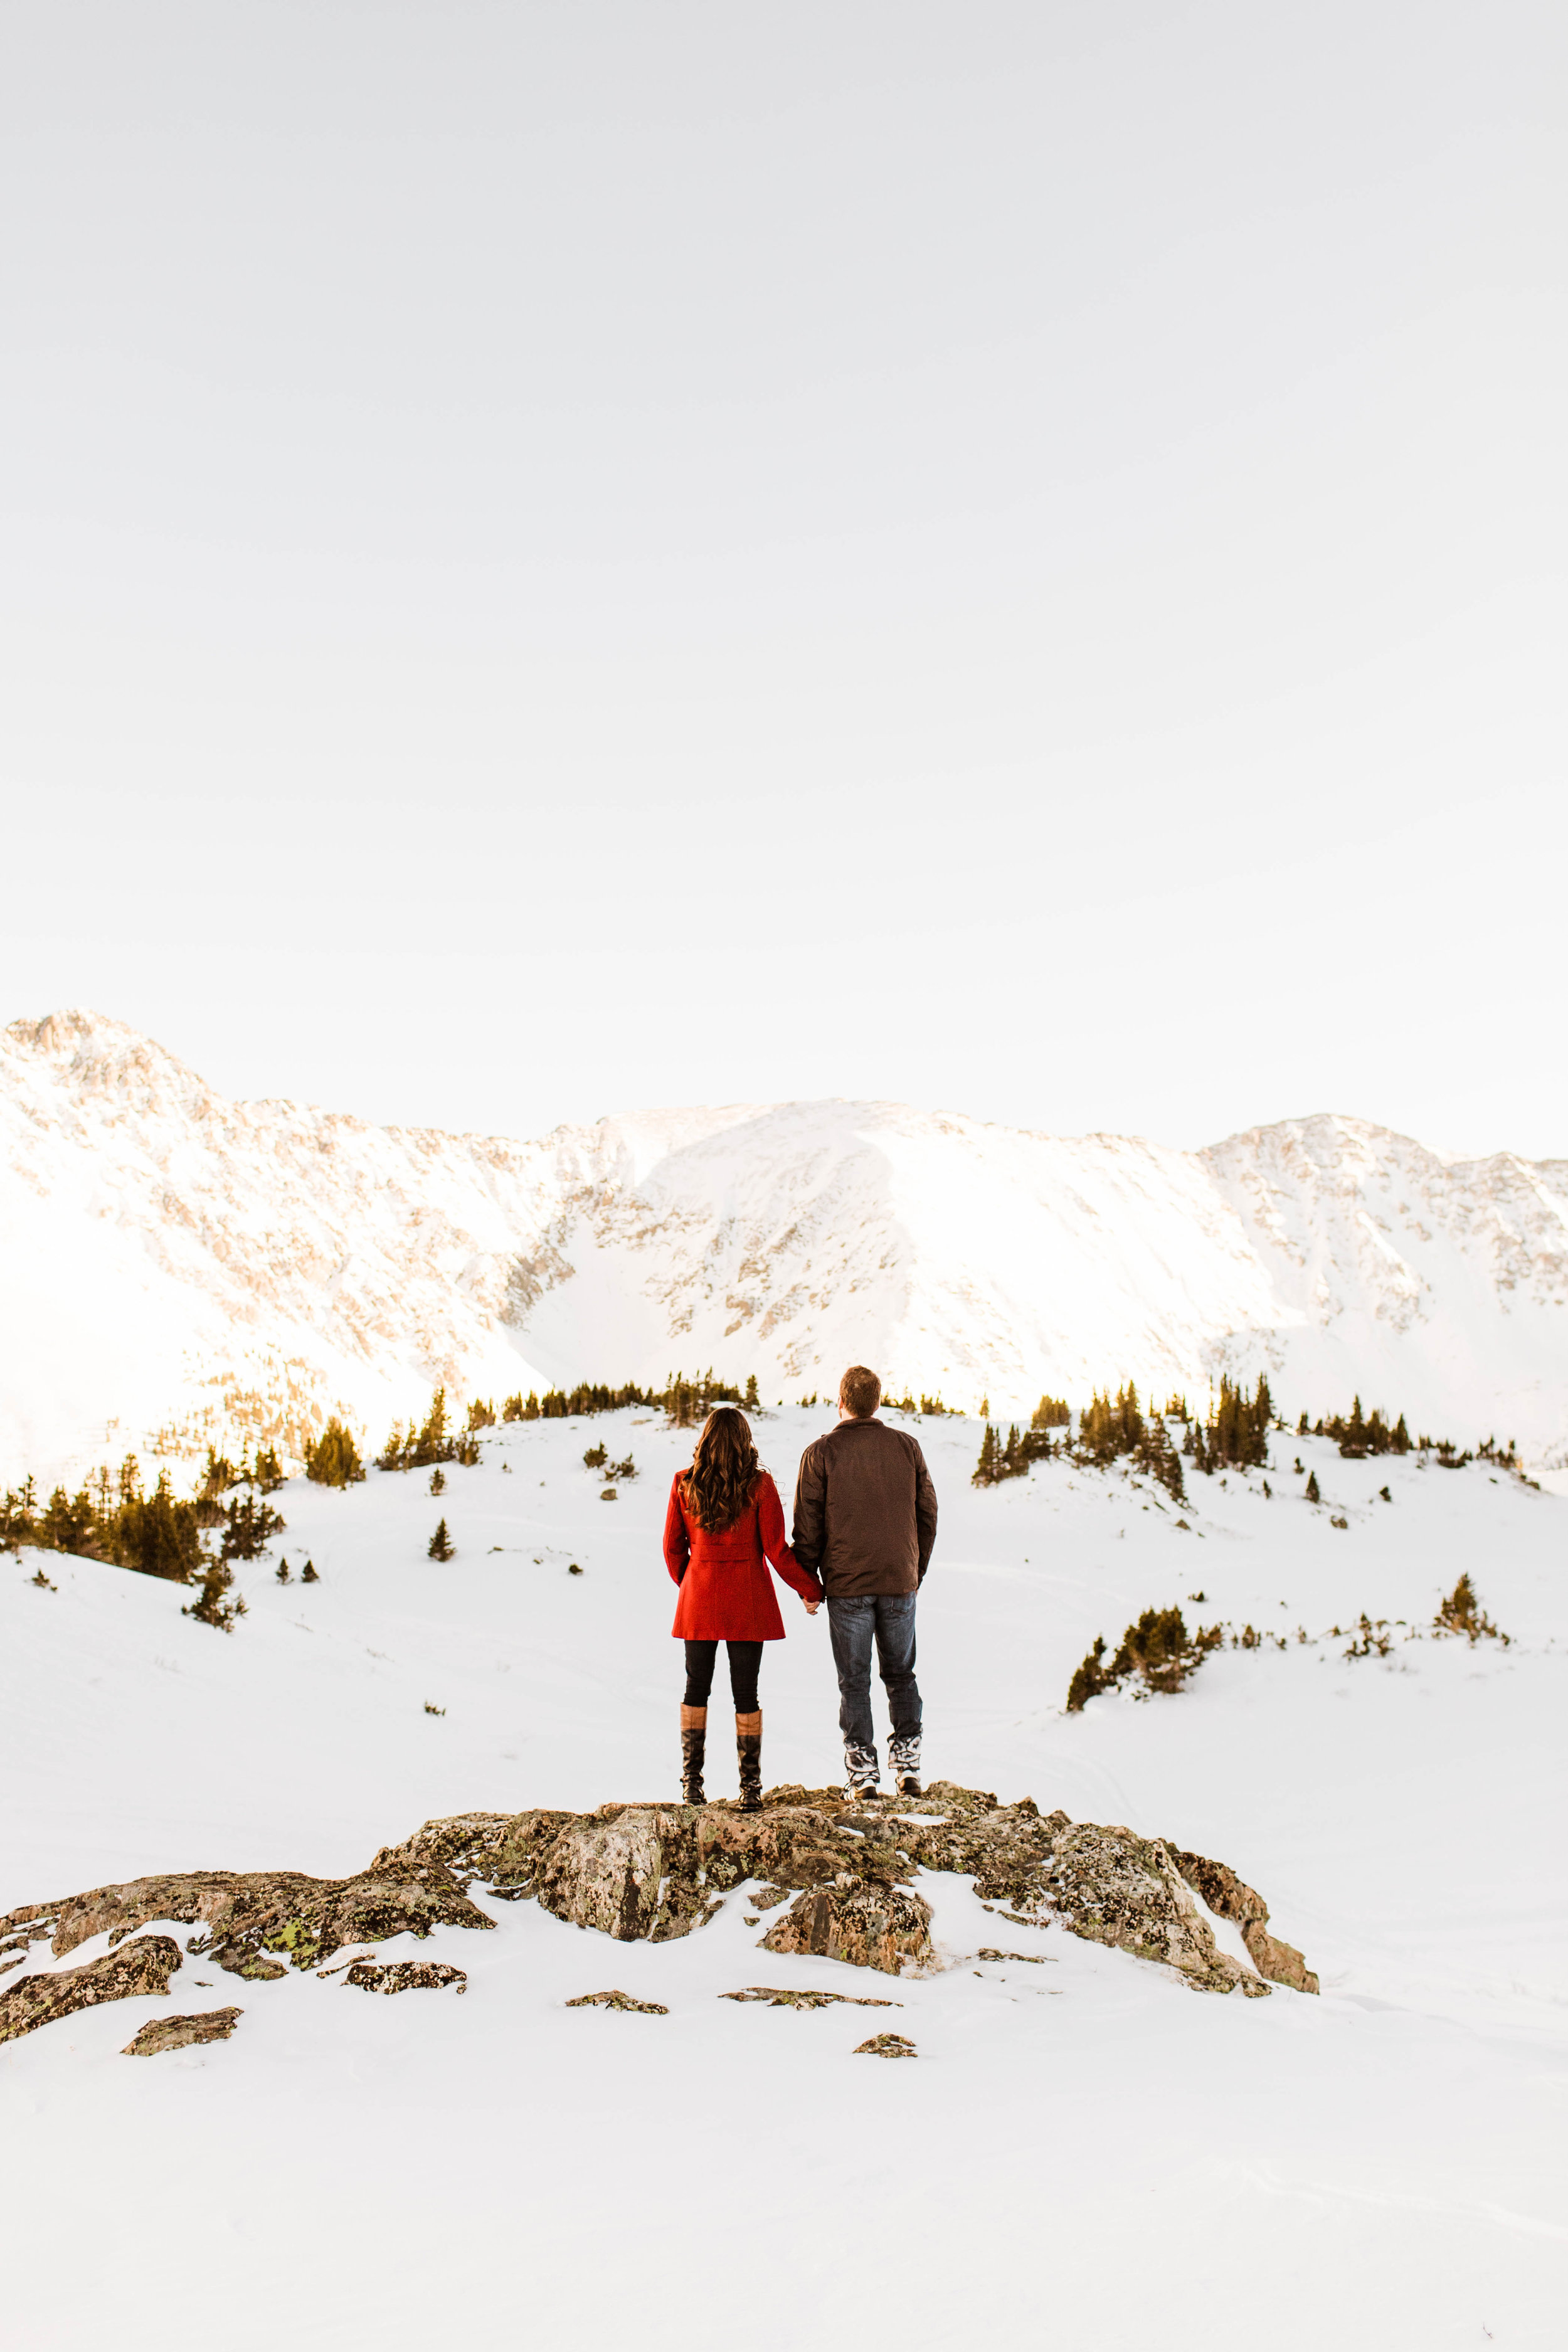 Where to find the best Colorado elopement photographers